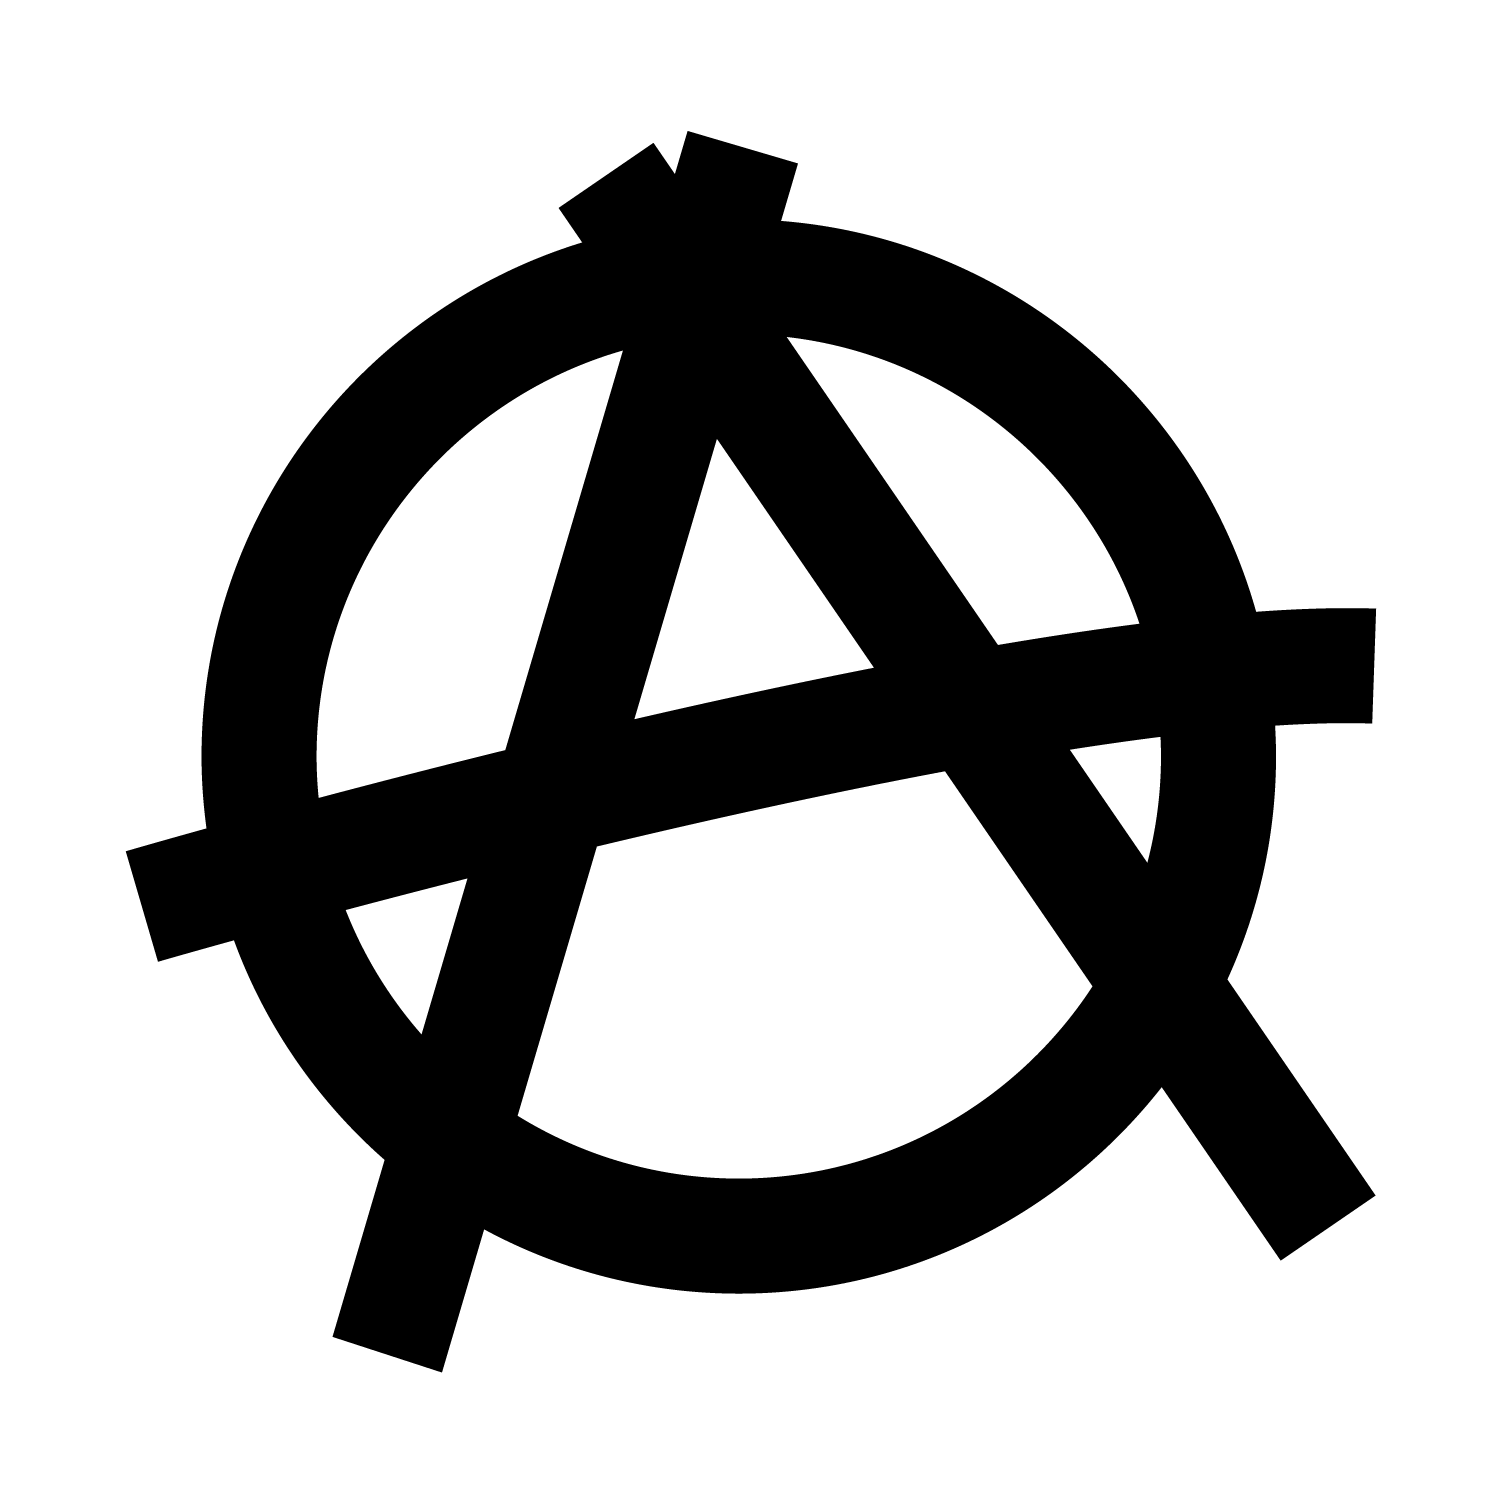 3 - Anarchy.png